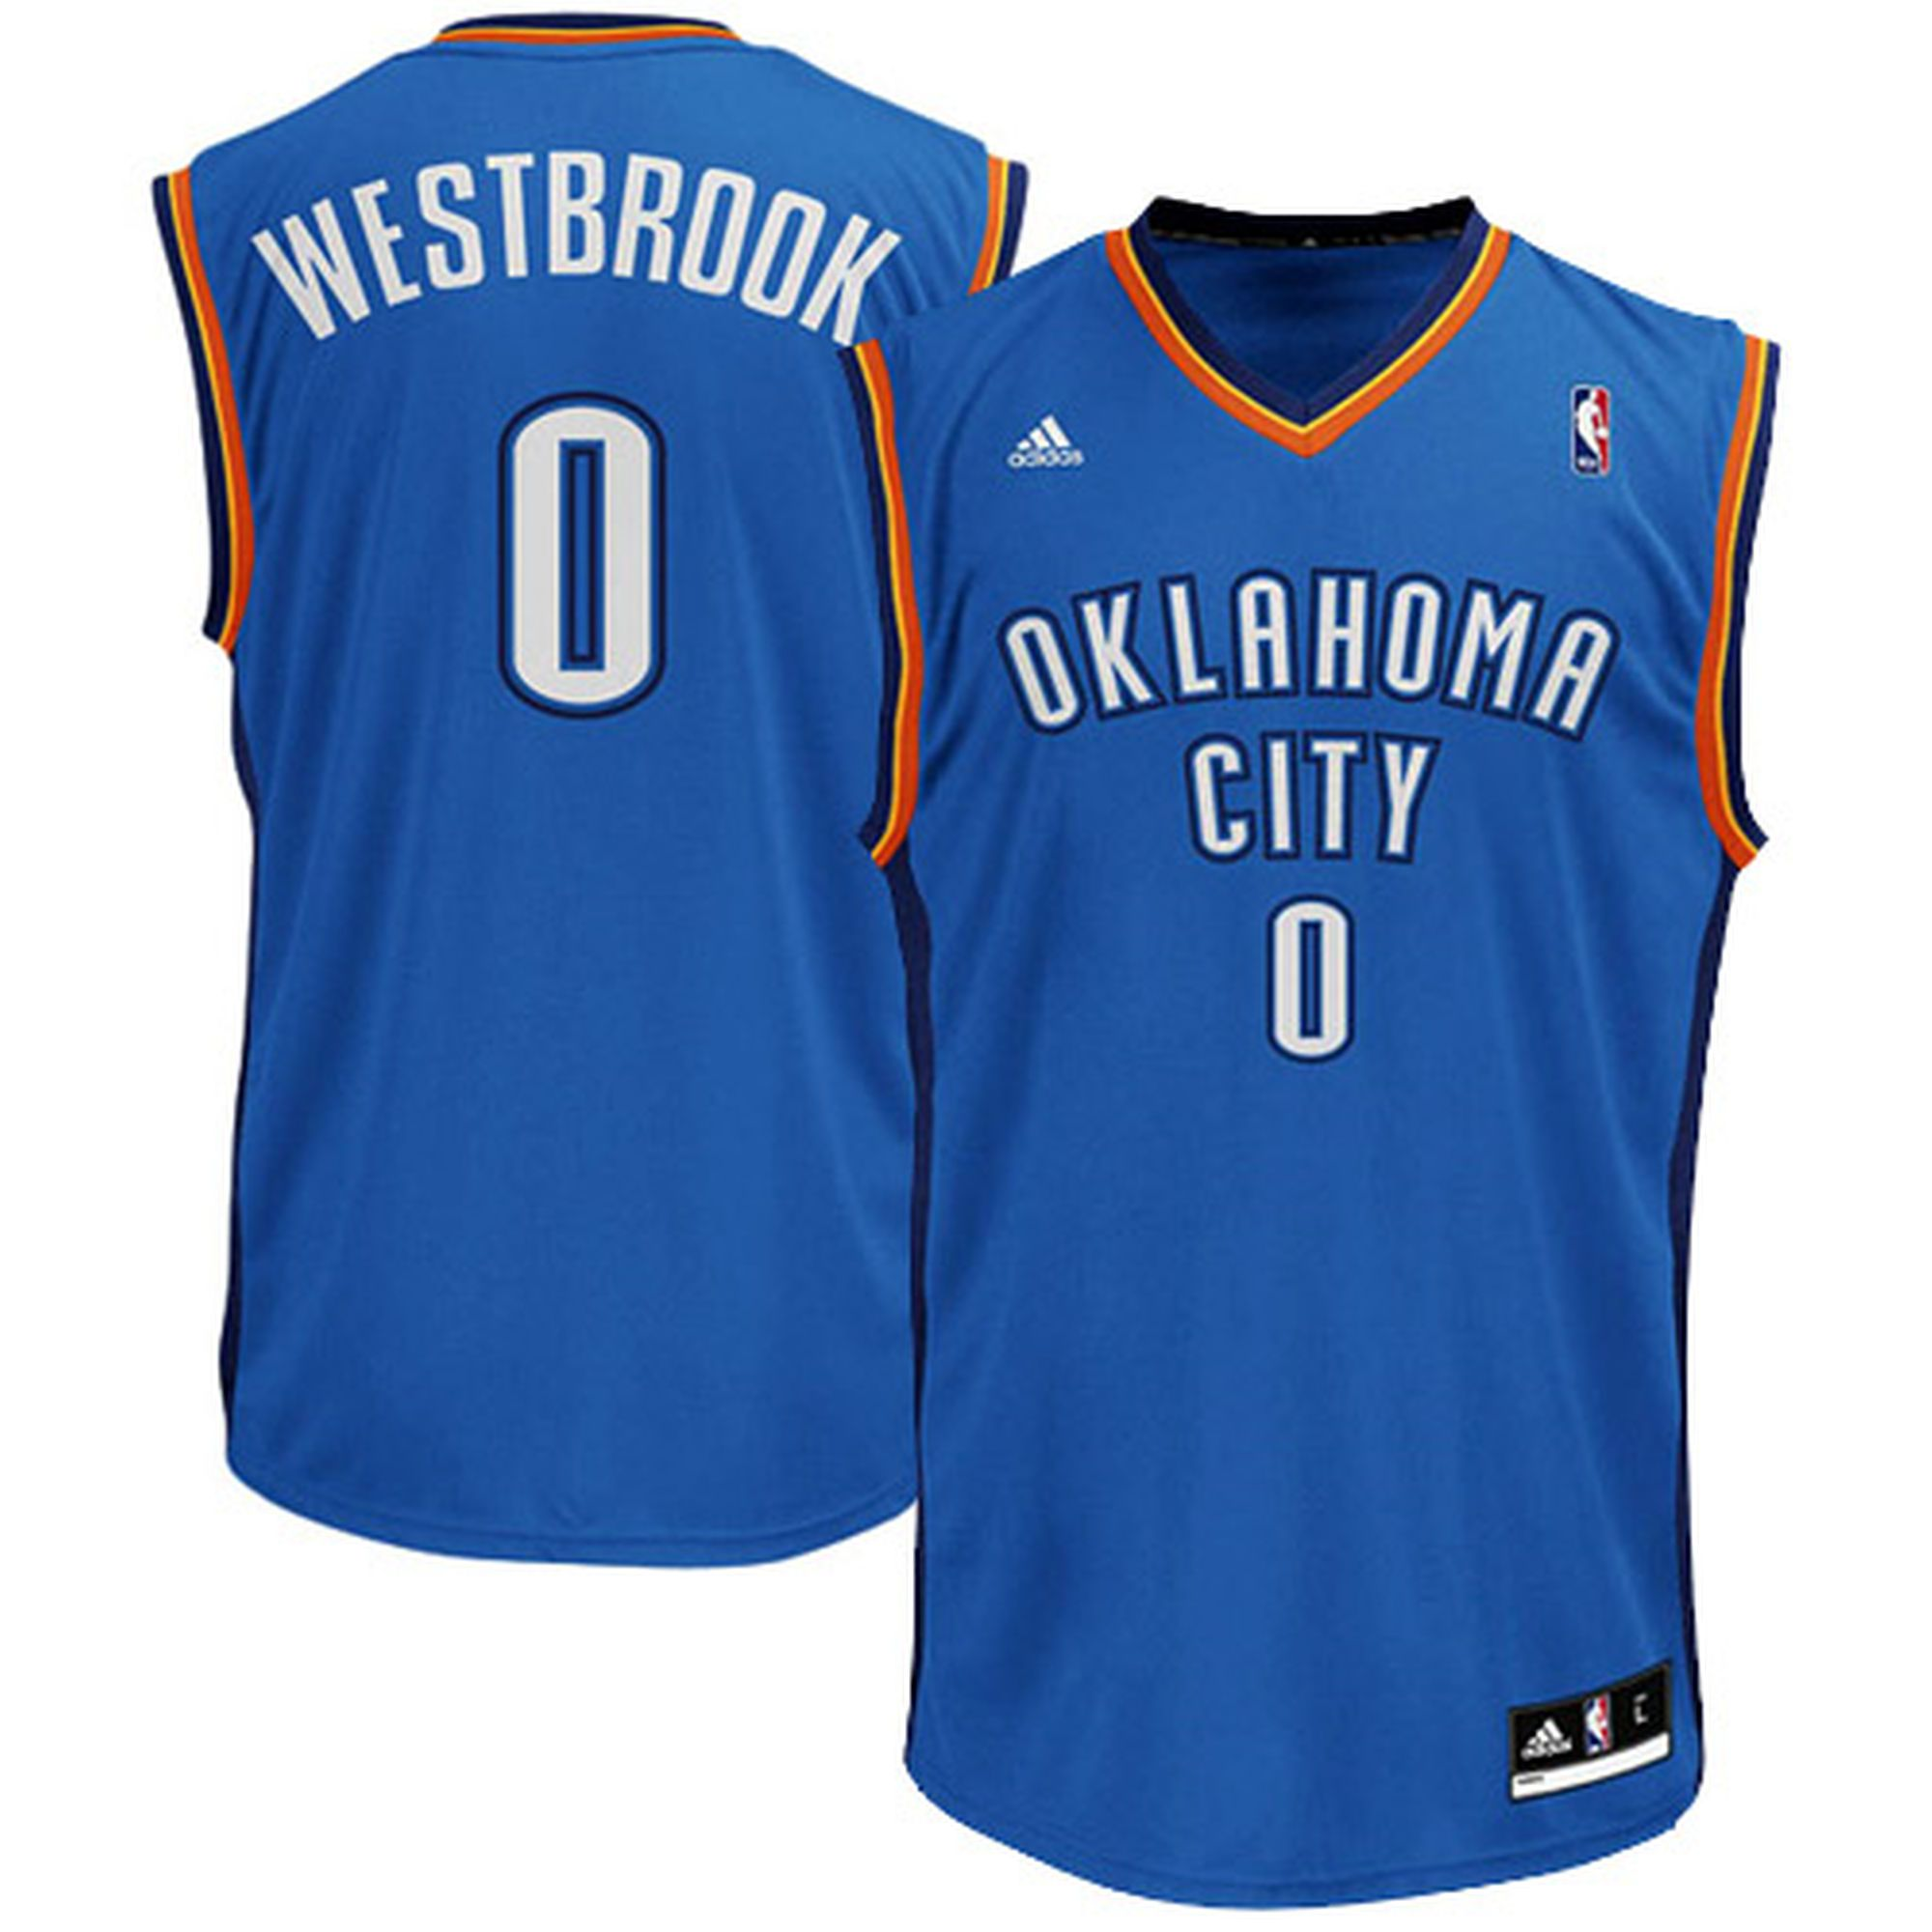 4a060de1d55 Russell Westbrook Oklahoma City Thunder adidas Replica Road Jersey - Light  Blue